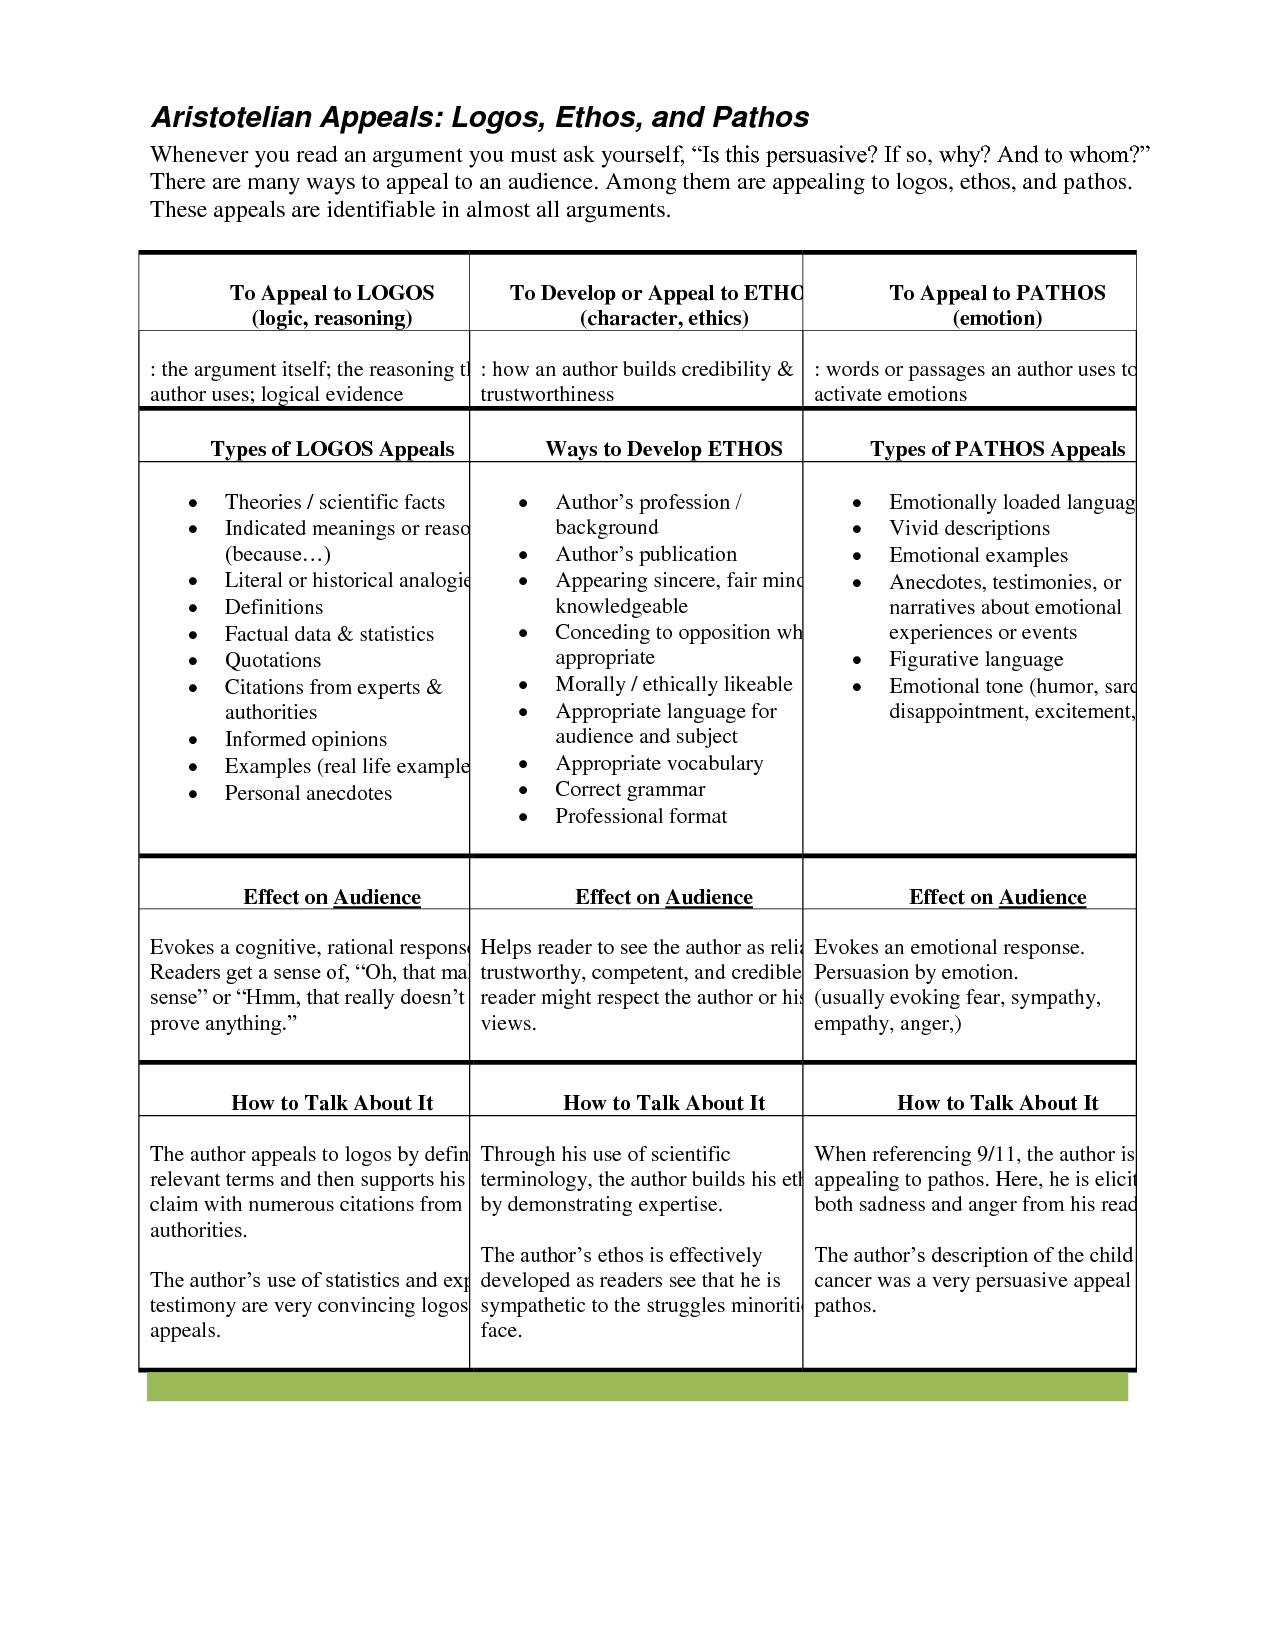 Ethos Pathos Logos Worksheet Lesupercoin Printables Worksheets